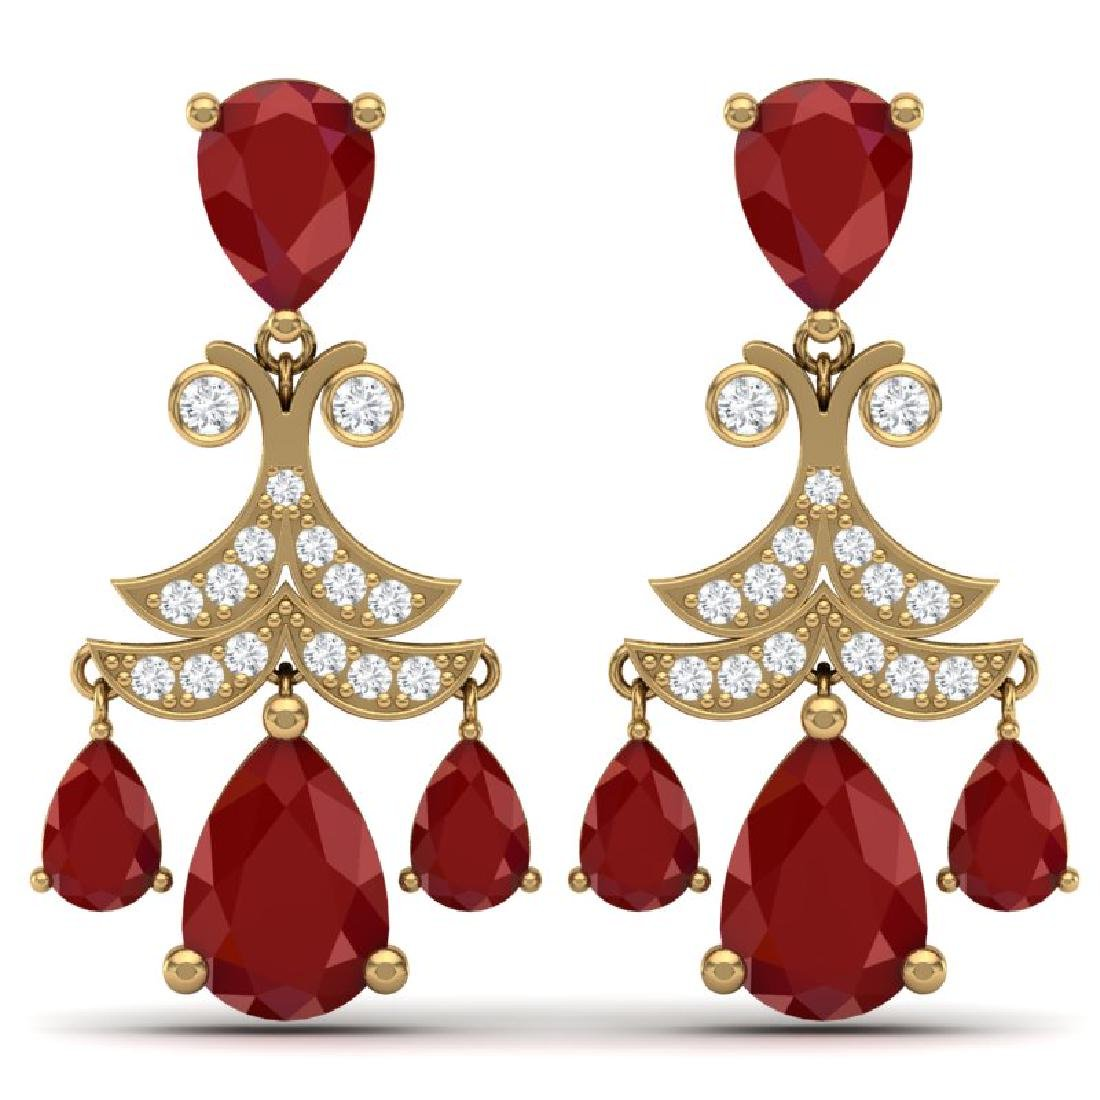 11.97 CTW Royalty Designer Ruby & VS Diamond Earrings